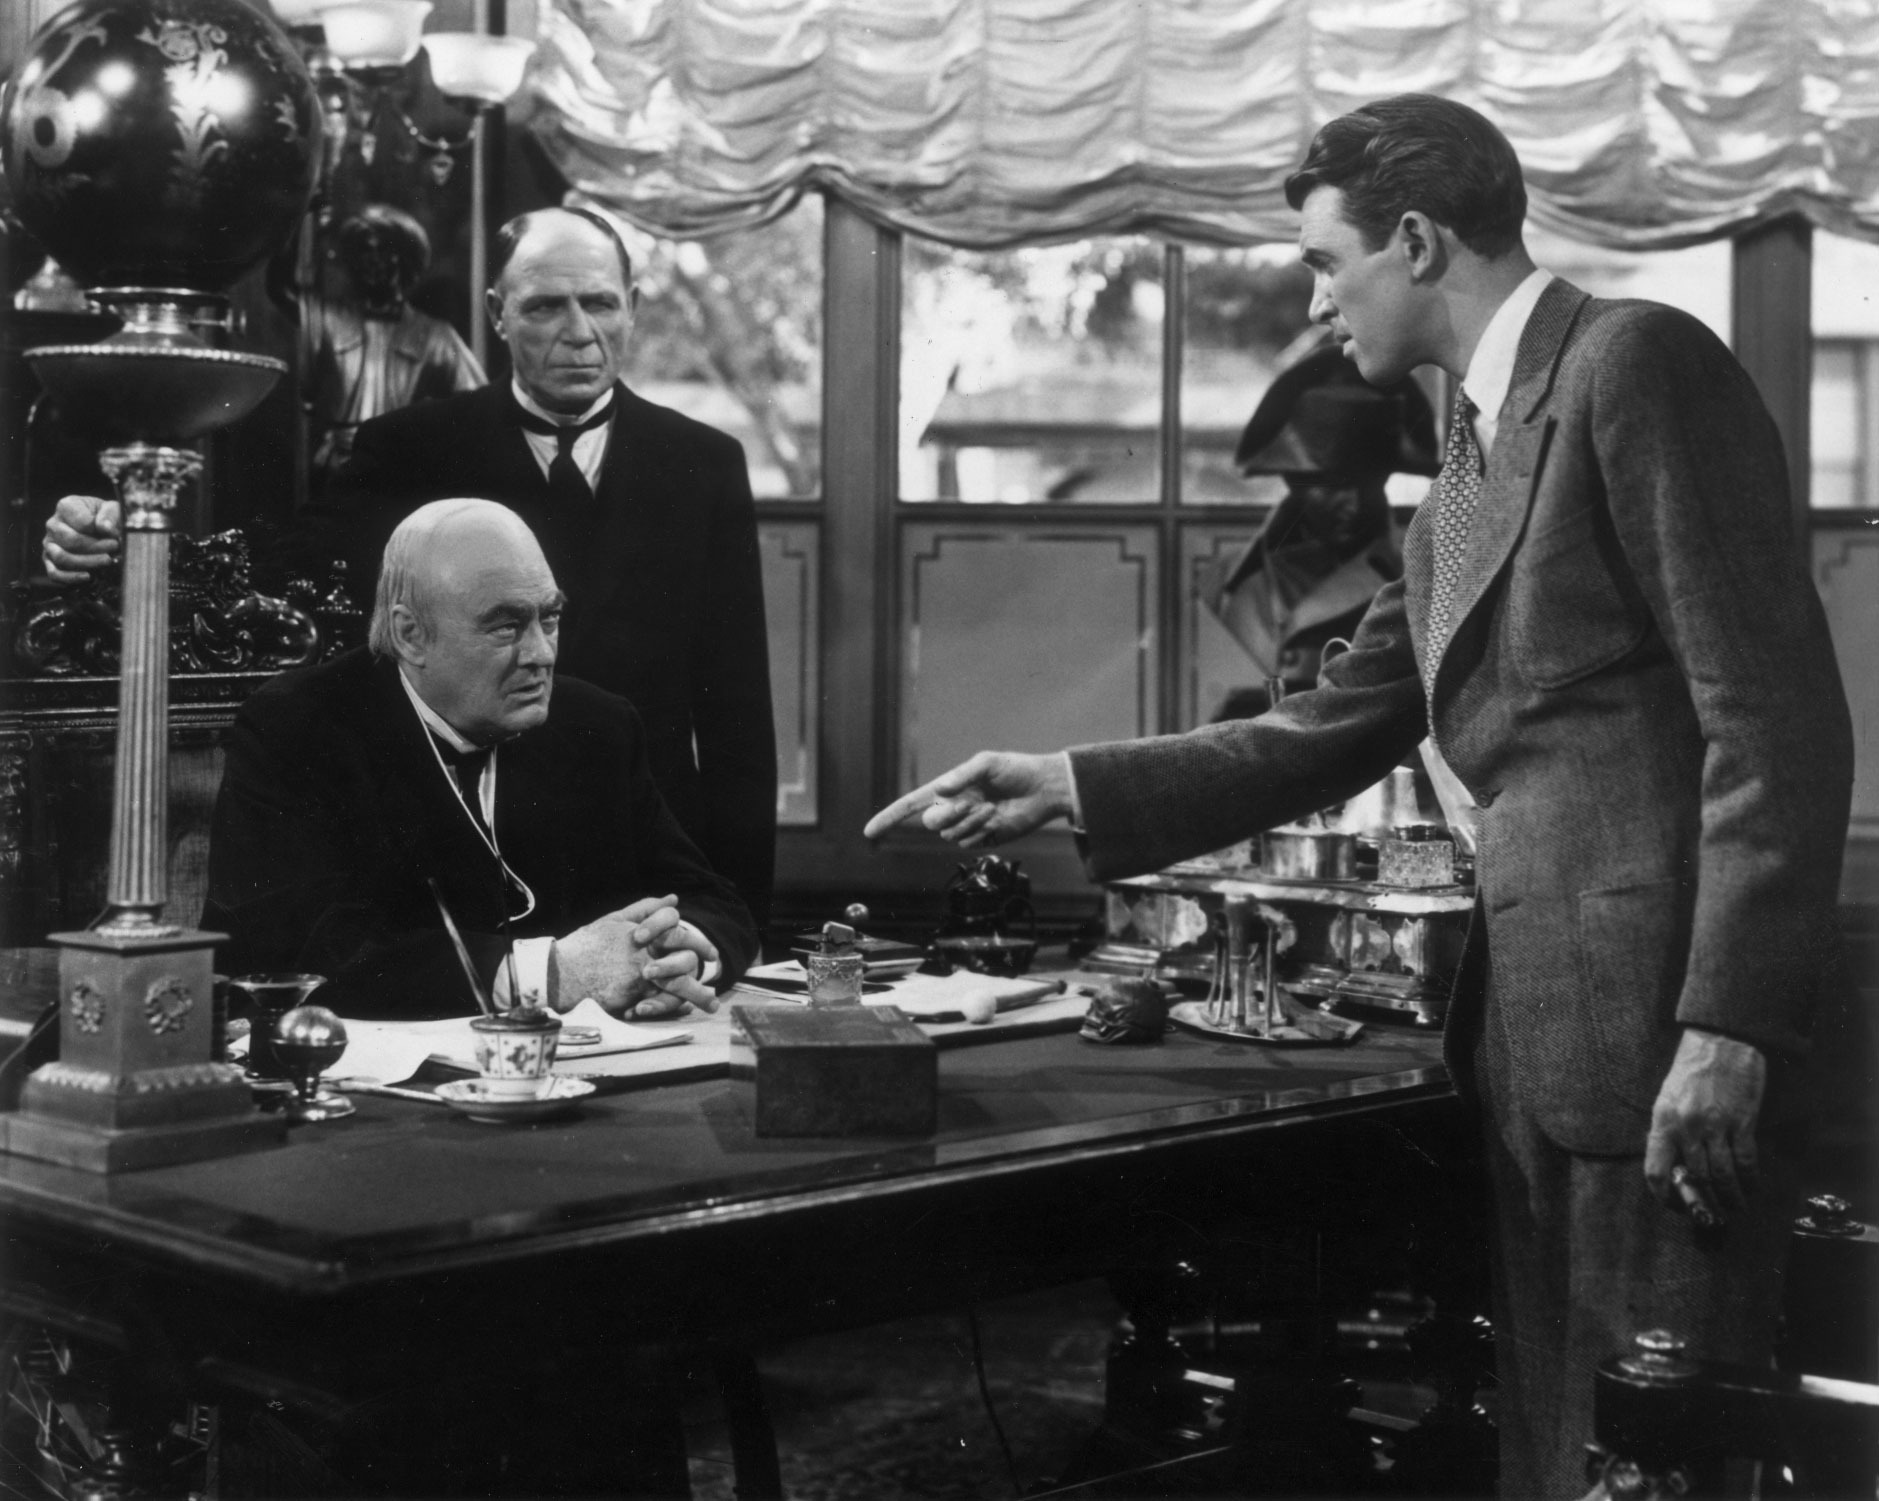 'It's a Wonderful Life' stars James Stewart, right, in this scene with Lionel Barrymore,seated at desk.